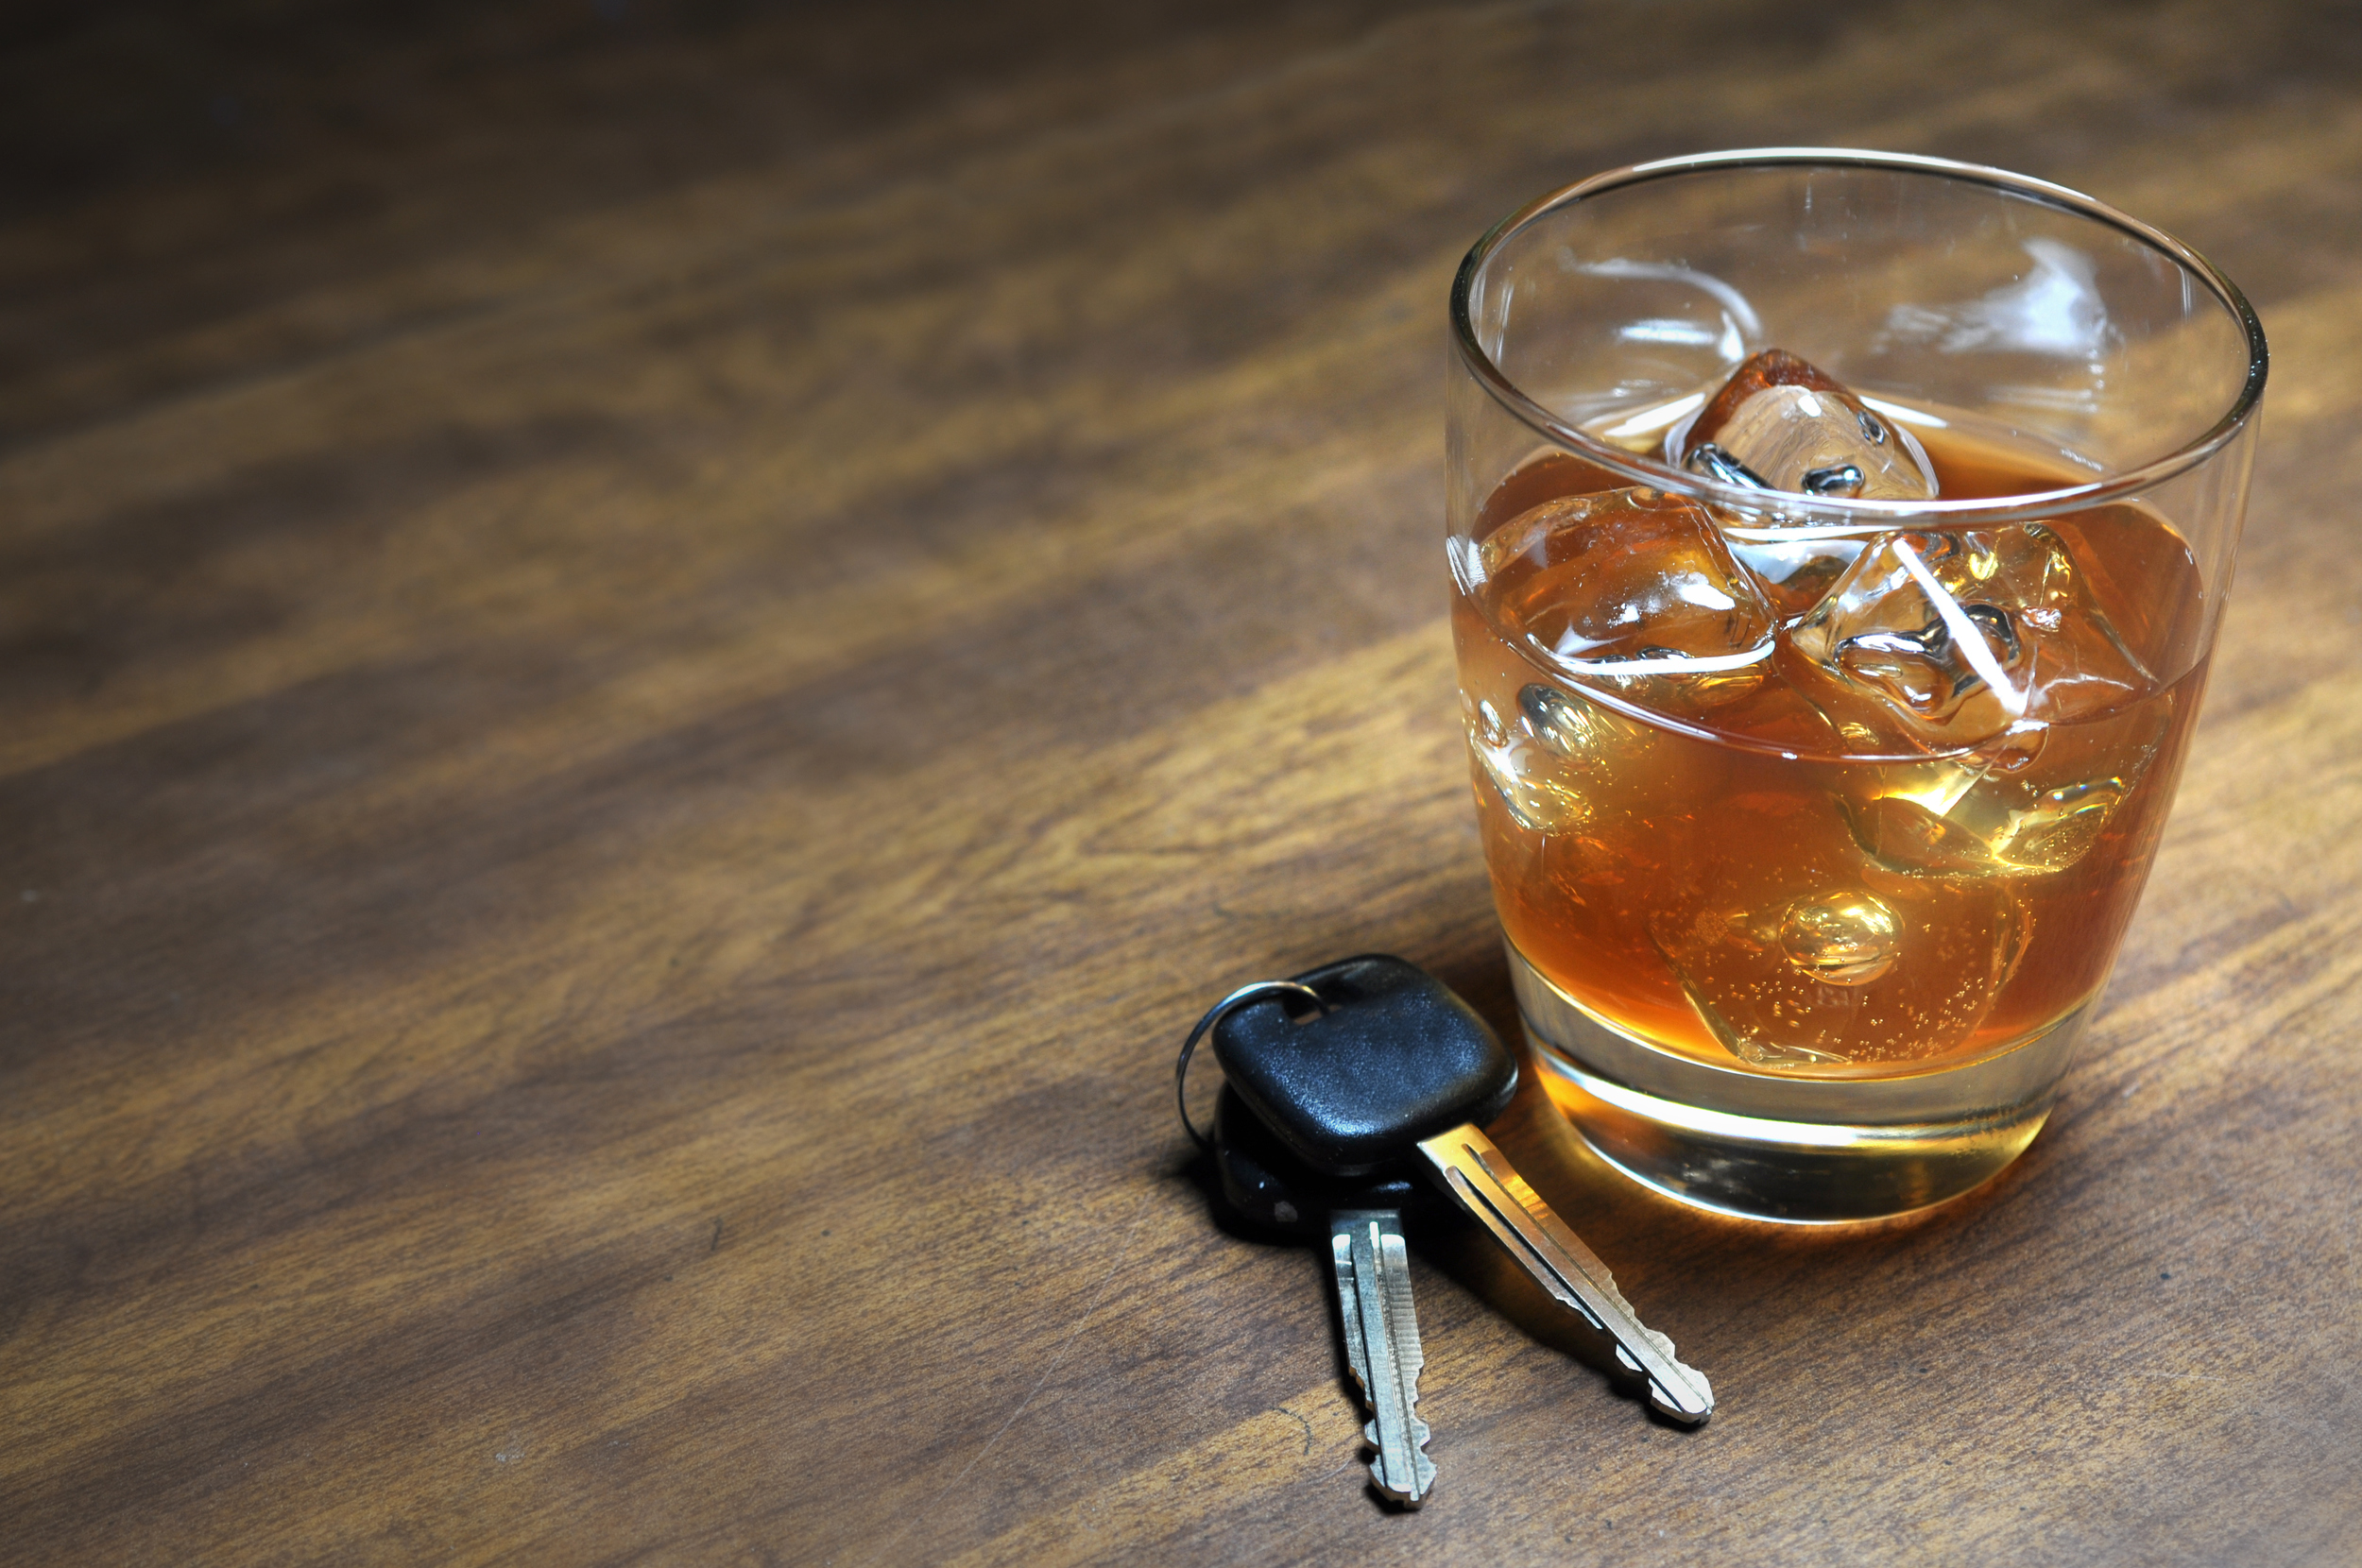 DUI & Drug Cases    If you've been arrested for  DUI  or a  drug  offense, the time to act is NOW. You have rights and it's crucial you have someone fighting to protect them.